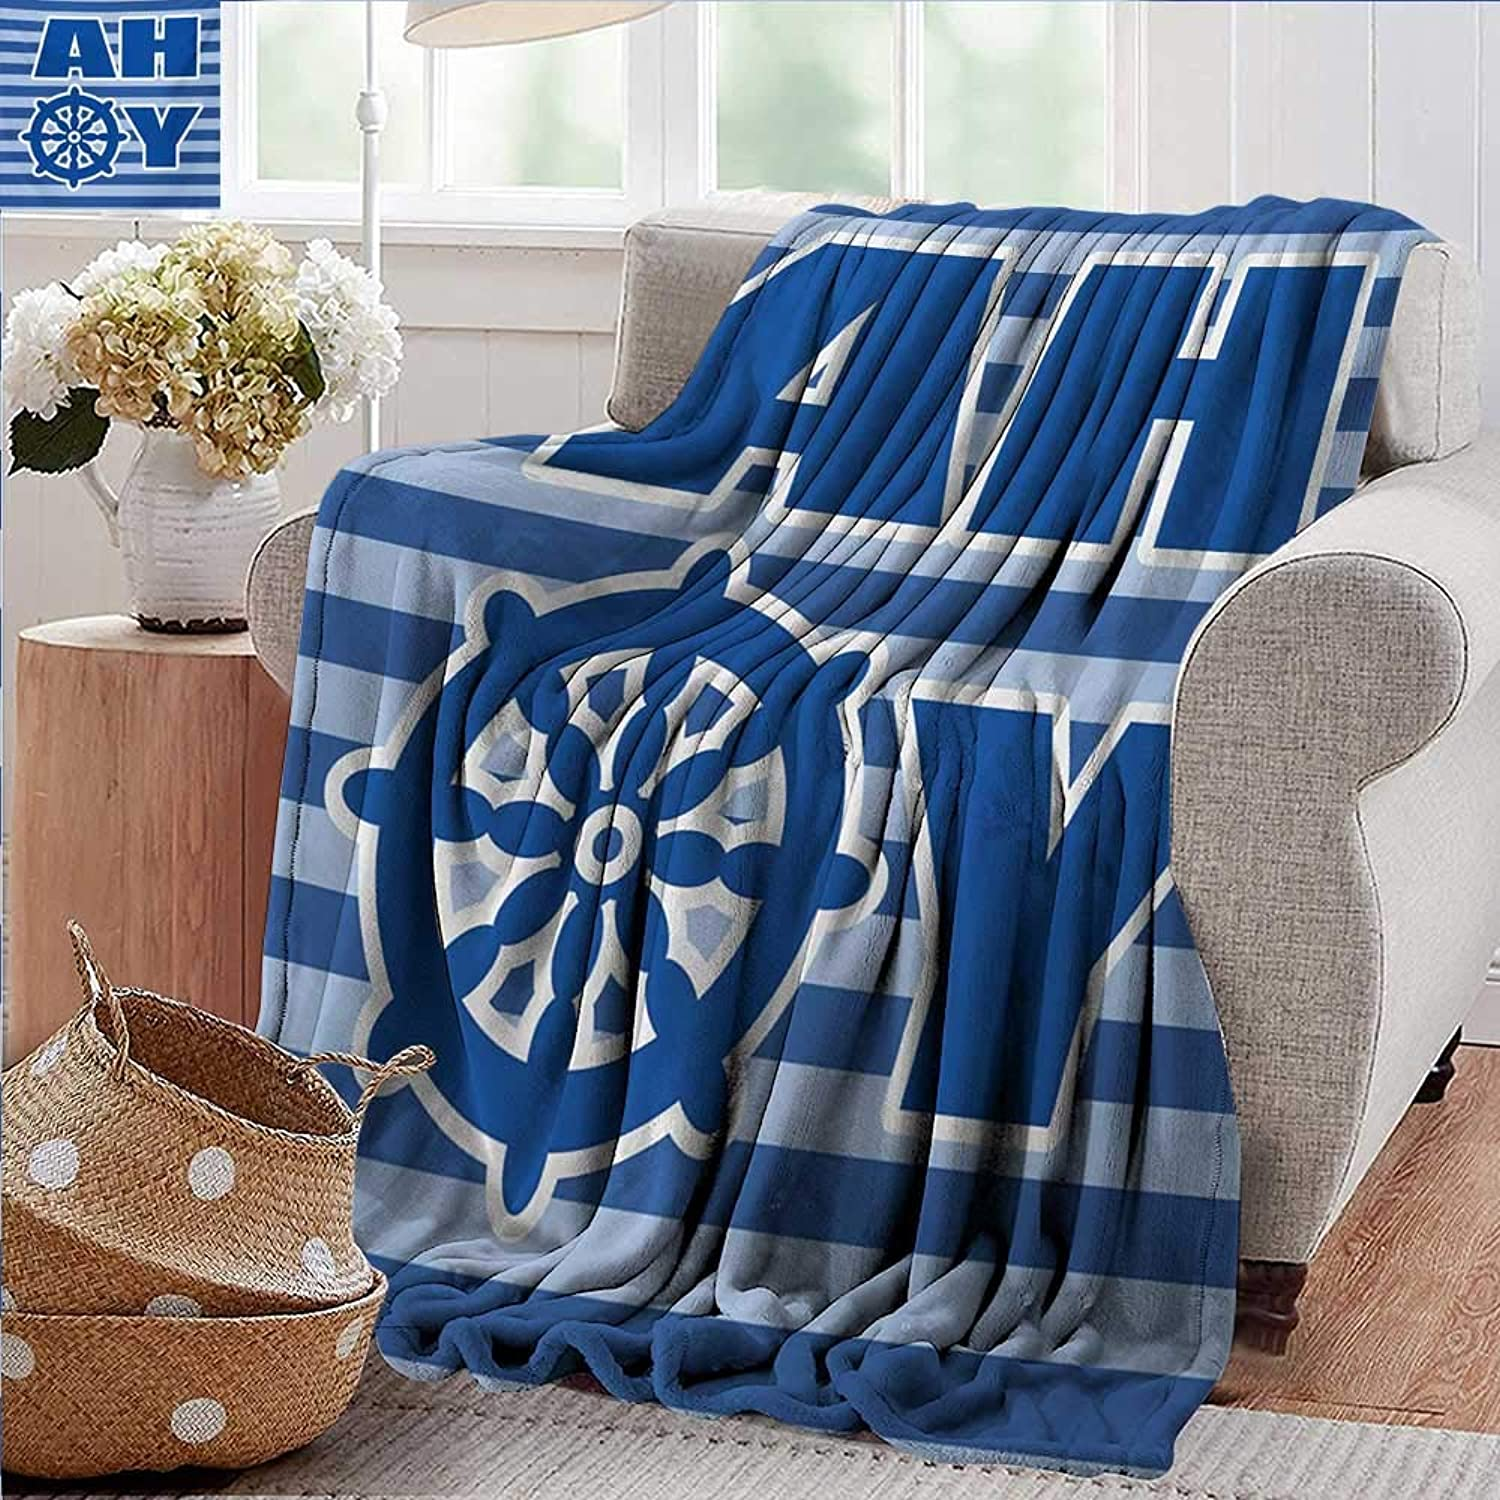 XavieraDoherty Outdoor Blanket,Ahoy Its a Boy,Ahoy Written with Nautical Wheel Striped Nursery Wall Art Design,bluee Pale bluee White,300GSM,Super Soft and Warm,Durable Throw Blanket 35 x60